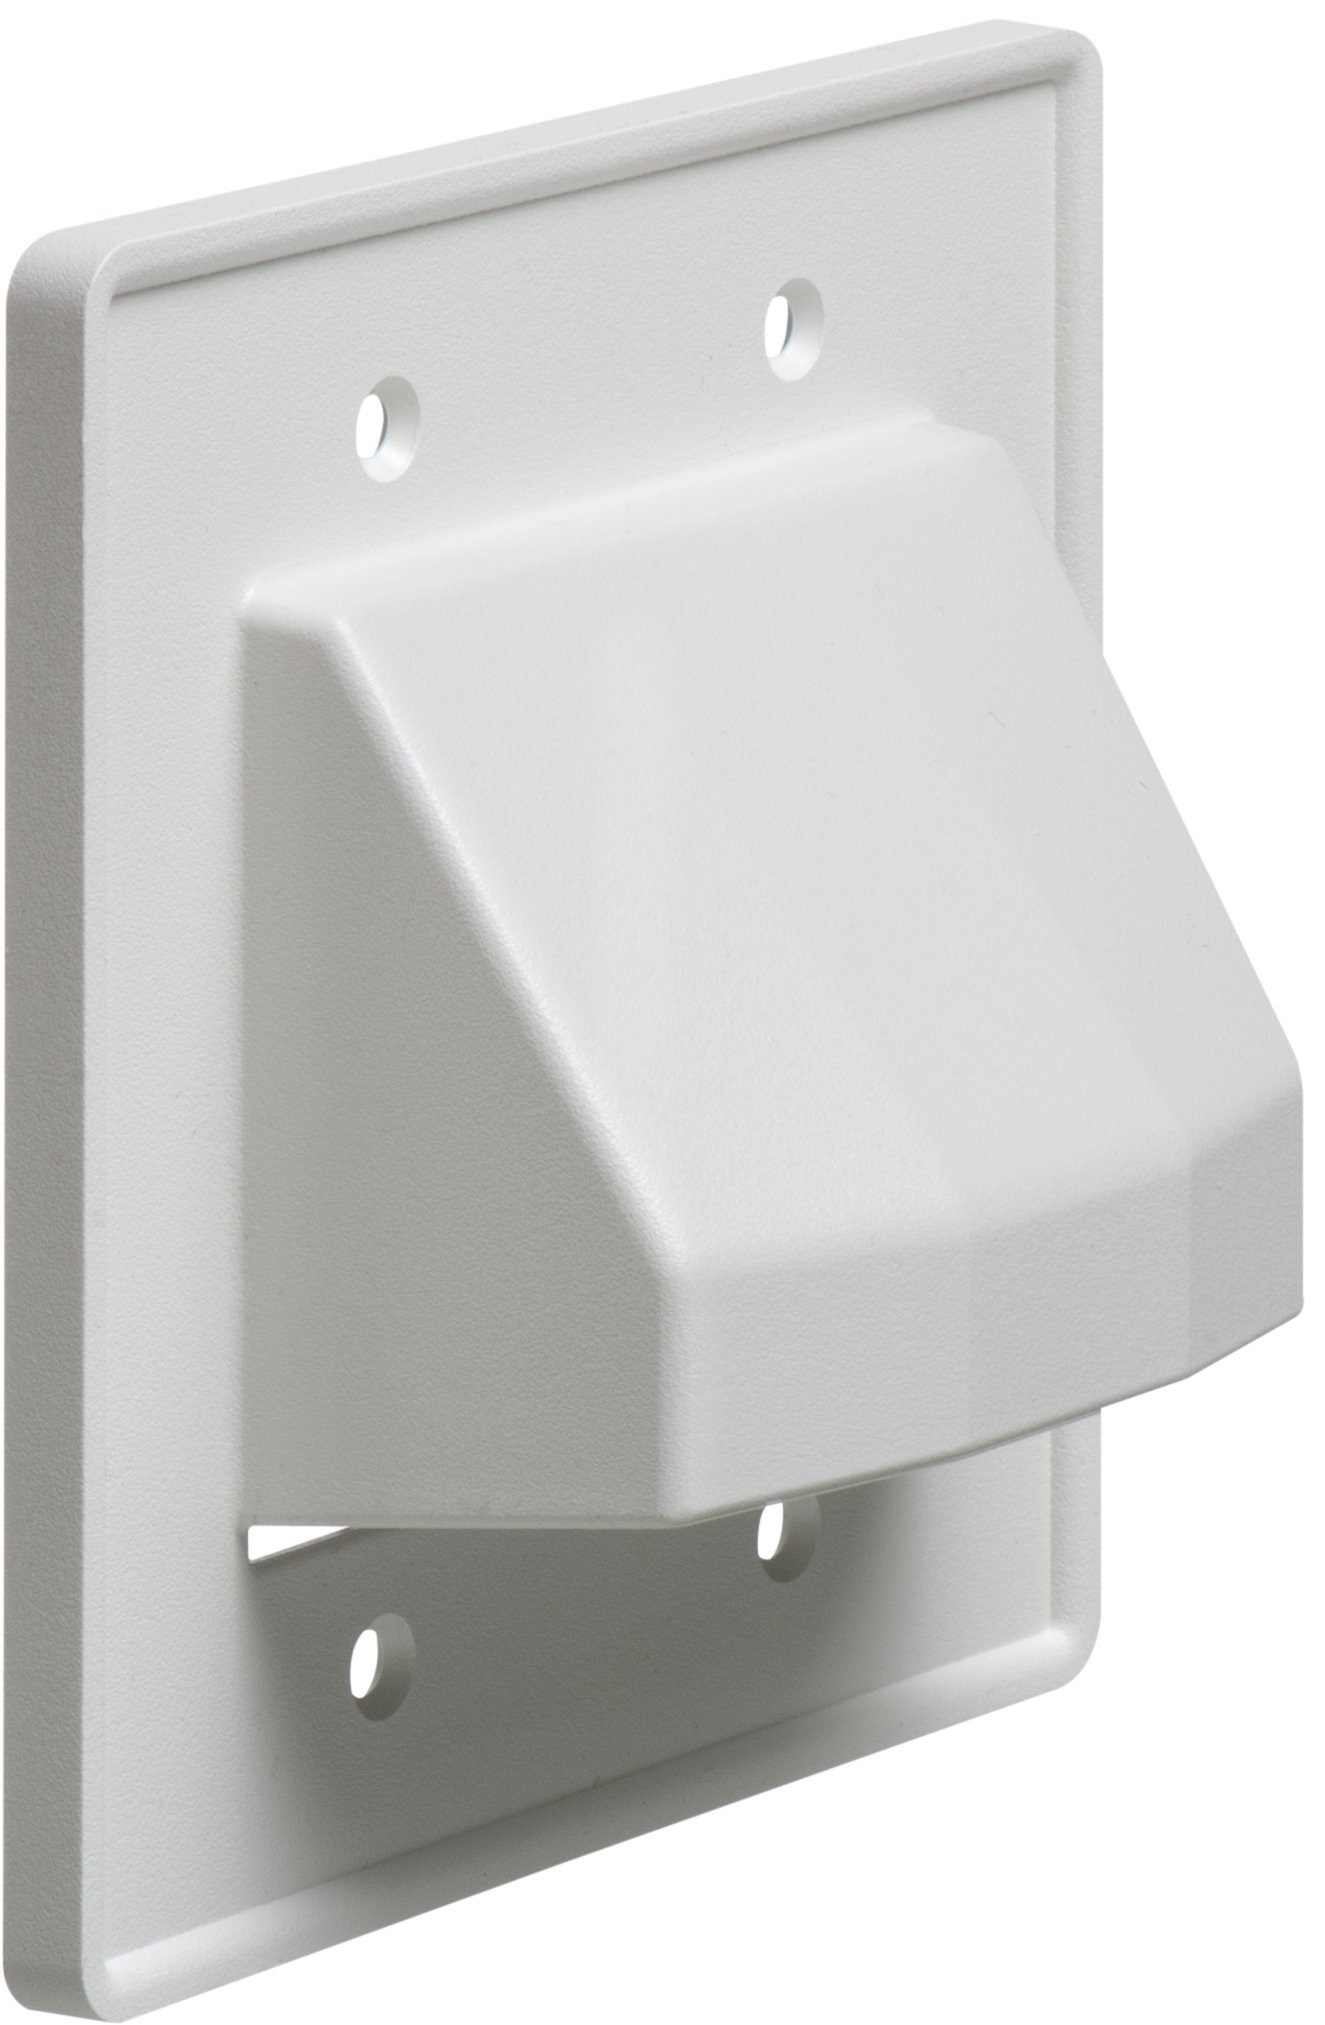 Arlington CE2-10 Recessed Low Voltage Cable Plate, 2-Gang, White, 10-Pack by Arlington Industries (Image #1)